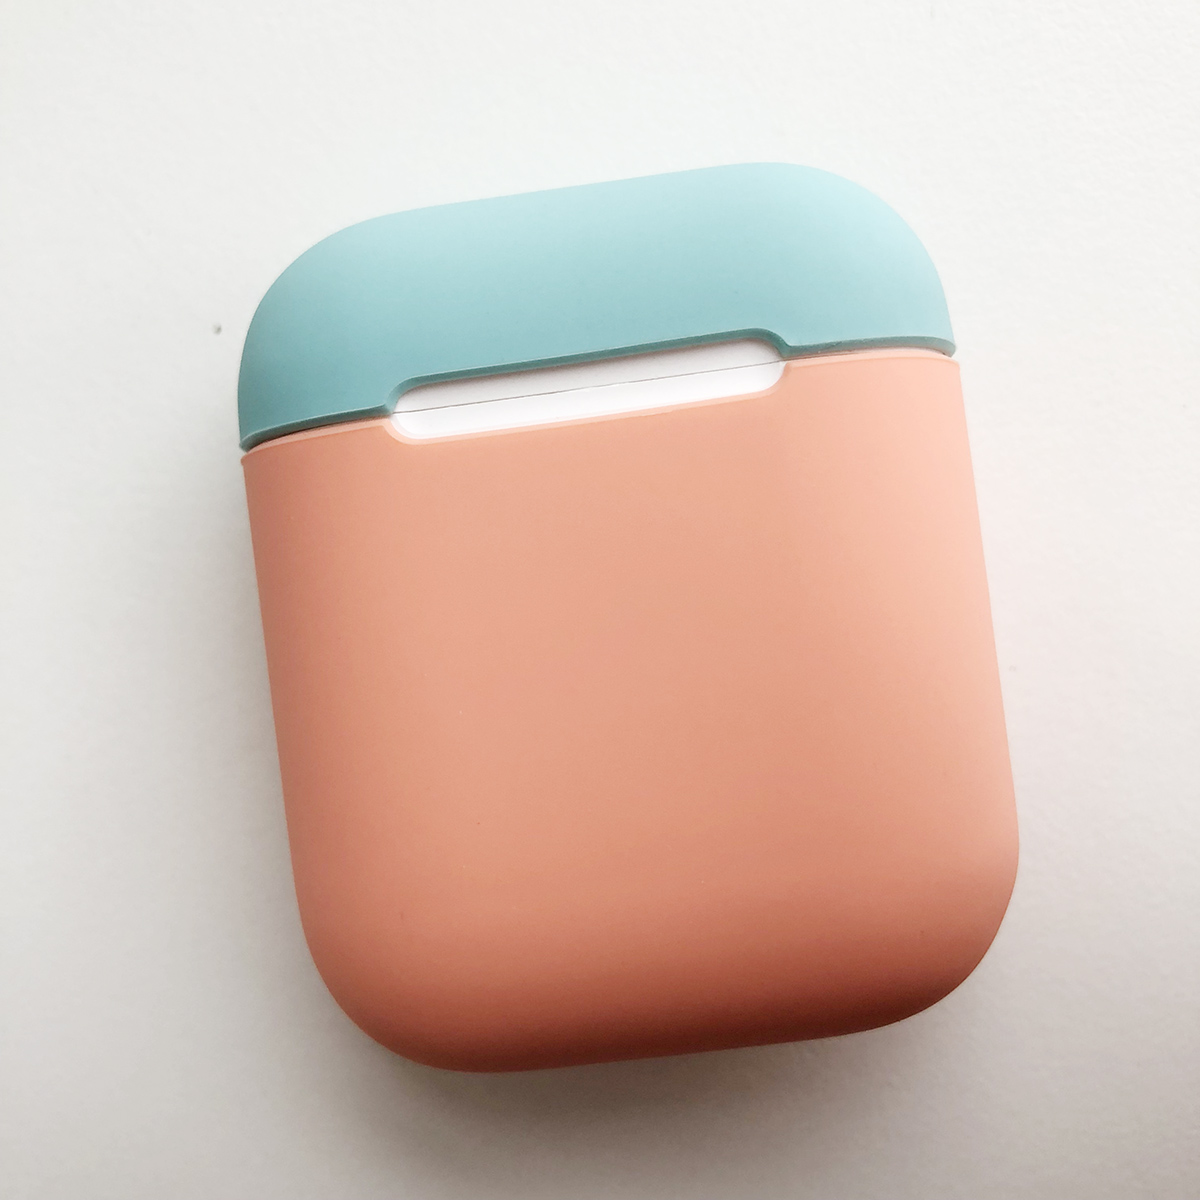 17 31] AirPods 2nd Generation Protector AirPods 2nd